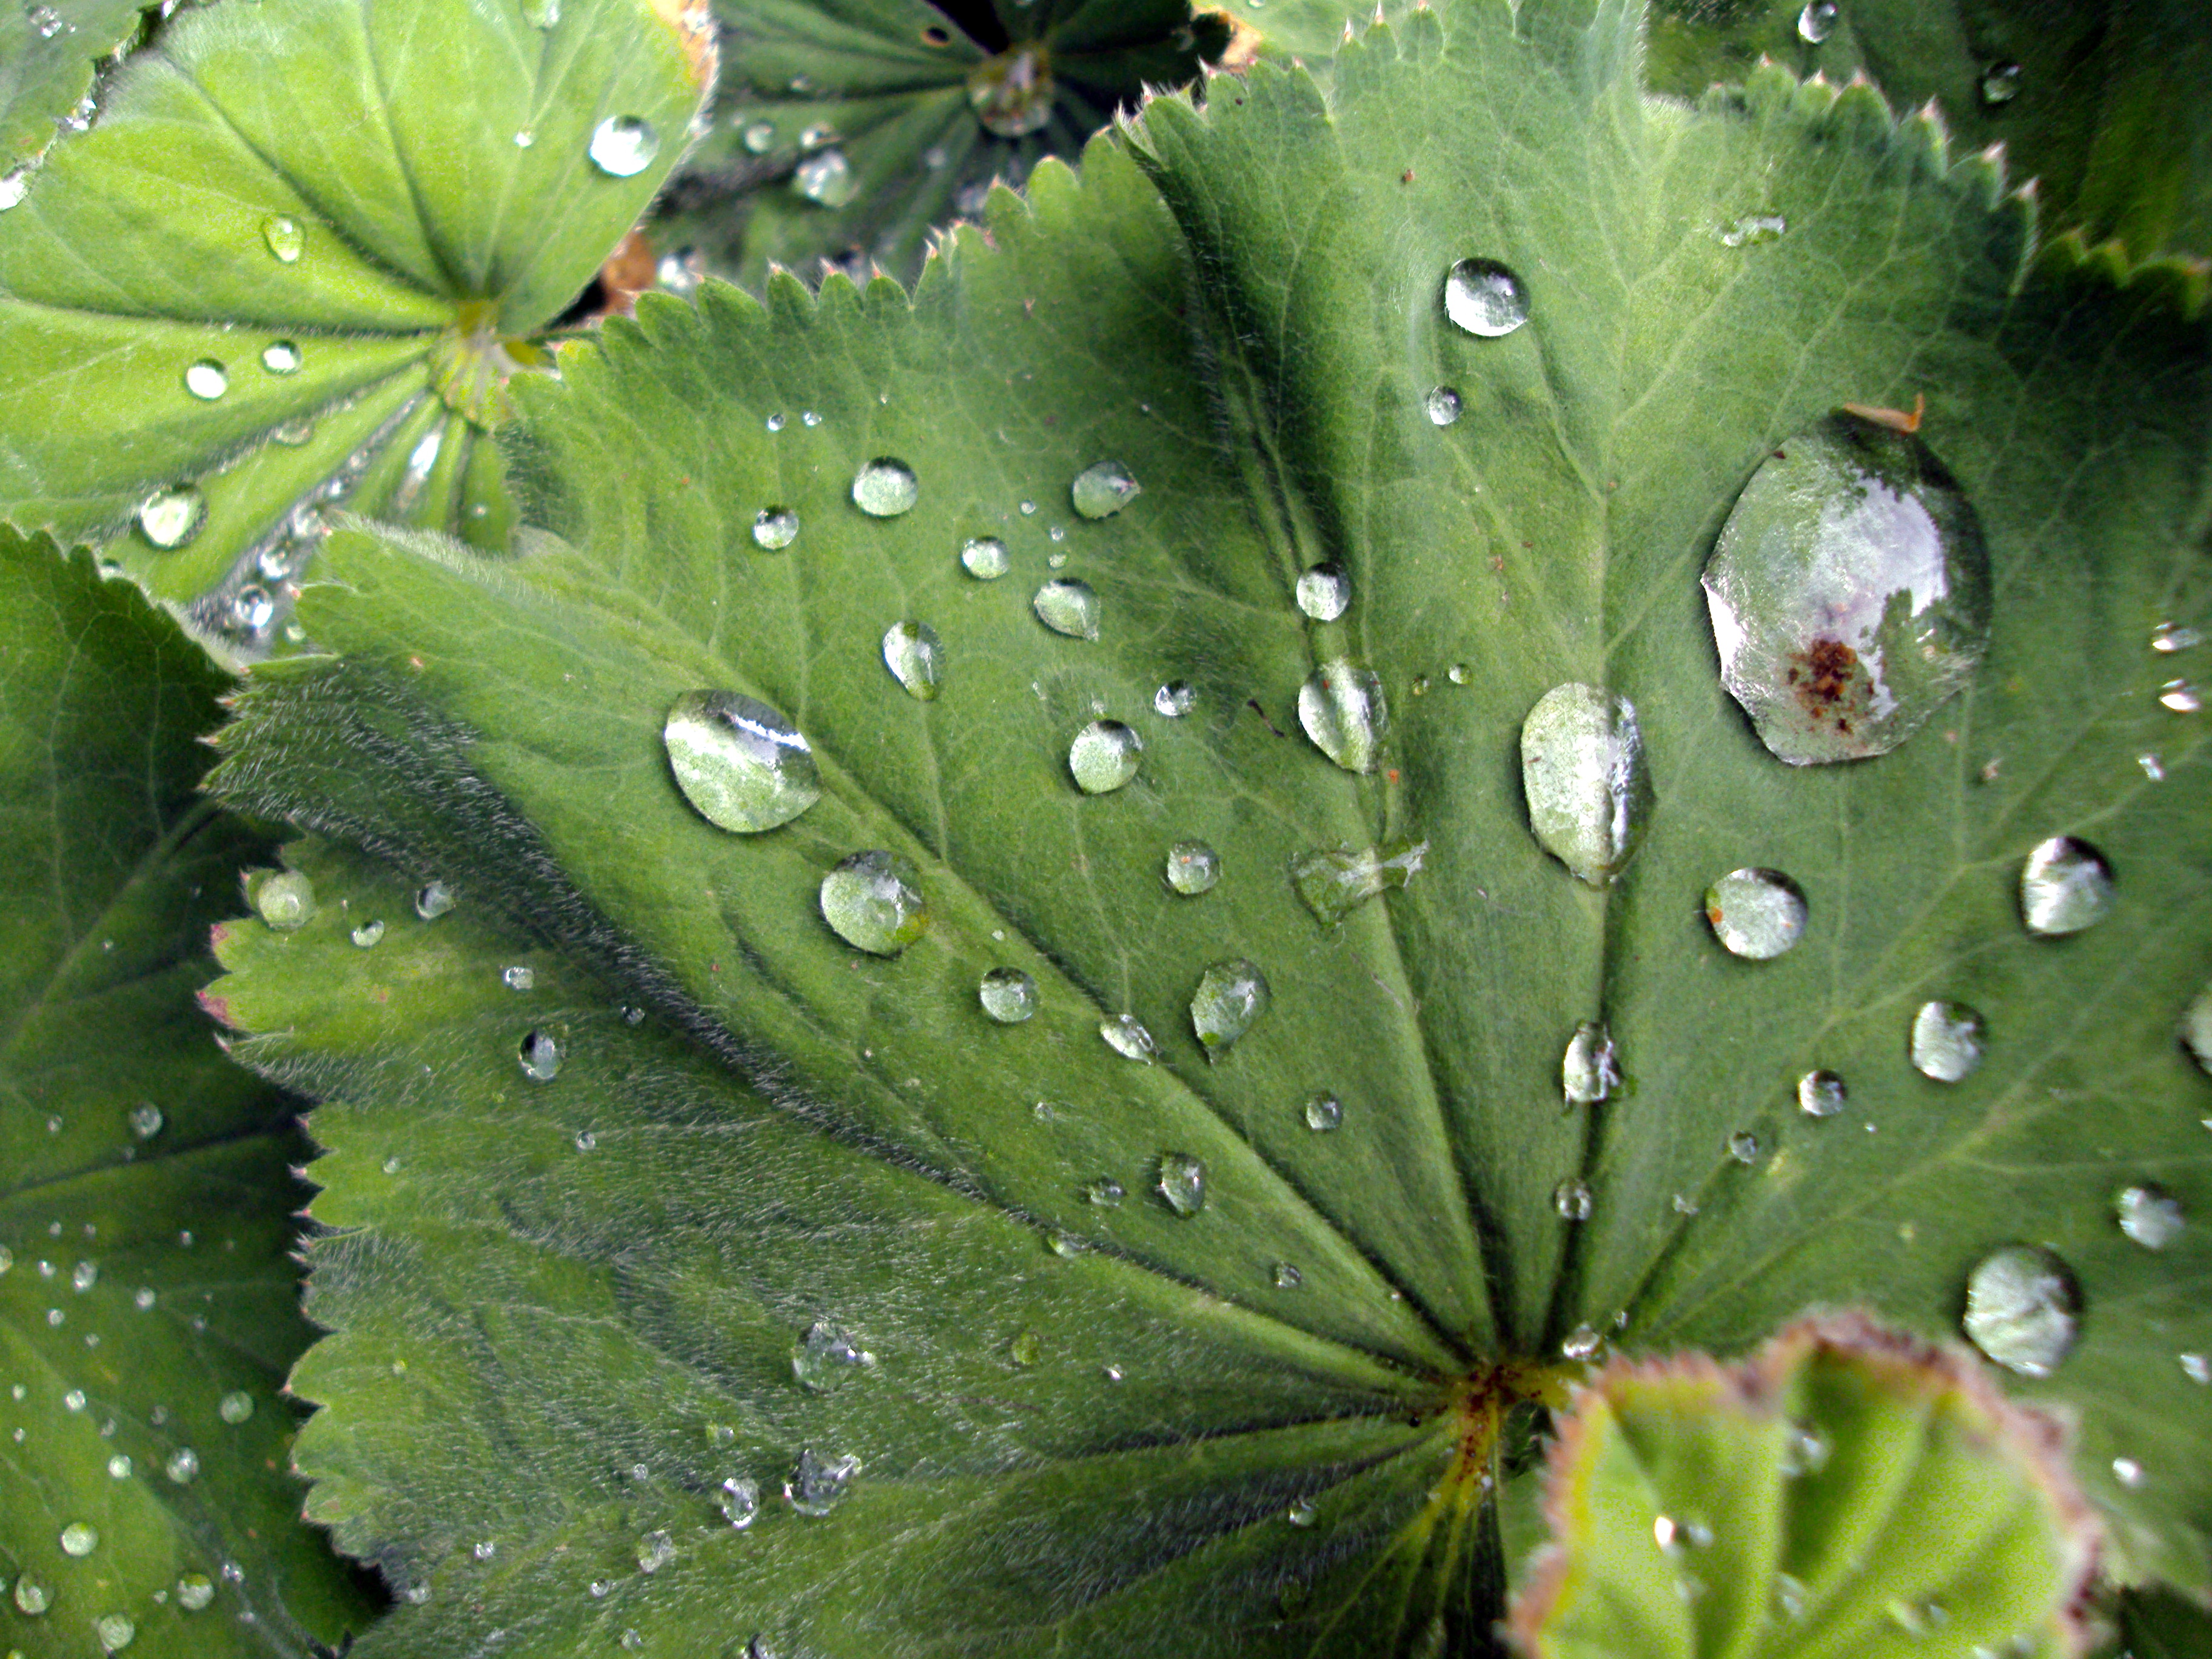 Dew on a leaf rolls off easily - not unlike your physical ability during cancer treatment.